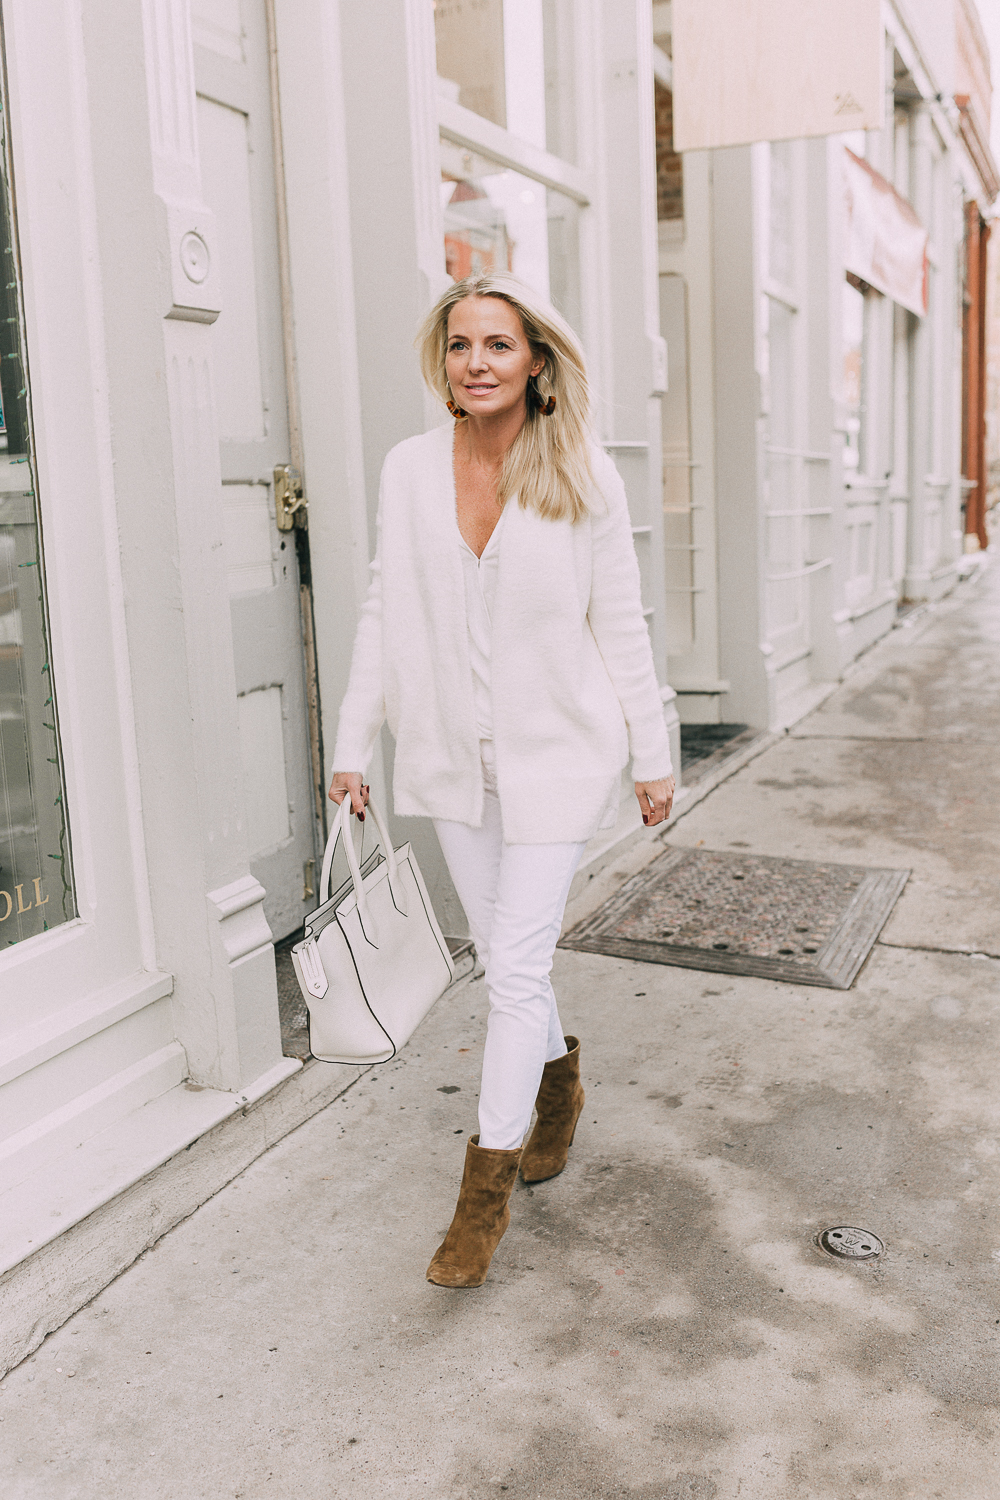 Fashion blogger Erin Busbee of BusbeeStyle.com wearing an all white look including a white fuzzy cardigan from Banana Republic, white faux wrap front blouse, and white jeans